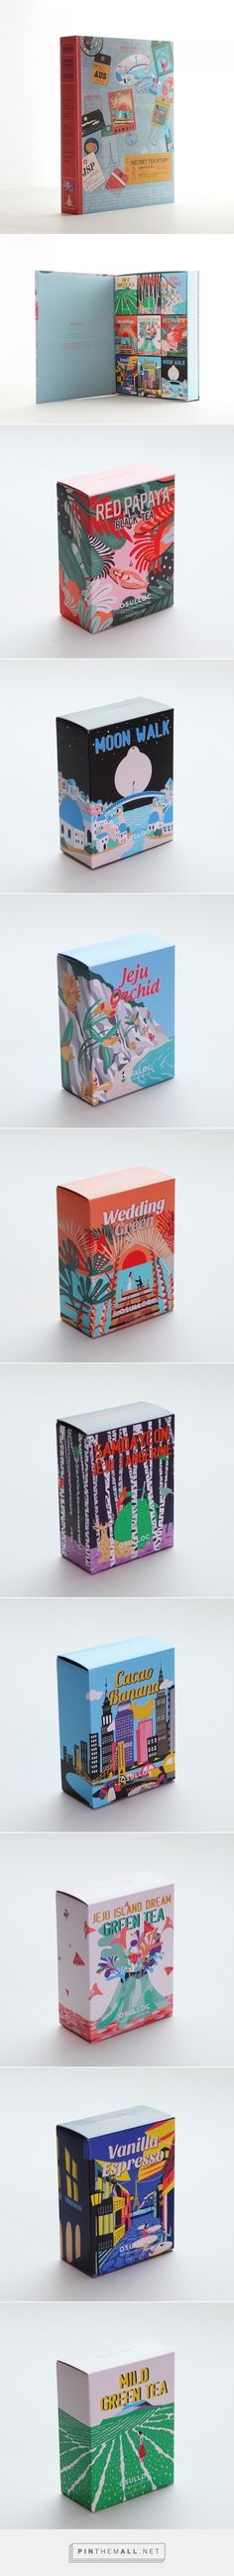 OSULLOC SECRET TEA STORY | JOSEPH curated by Packaging Diva PD. Tea Packaging…